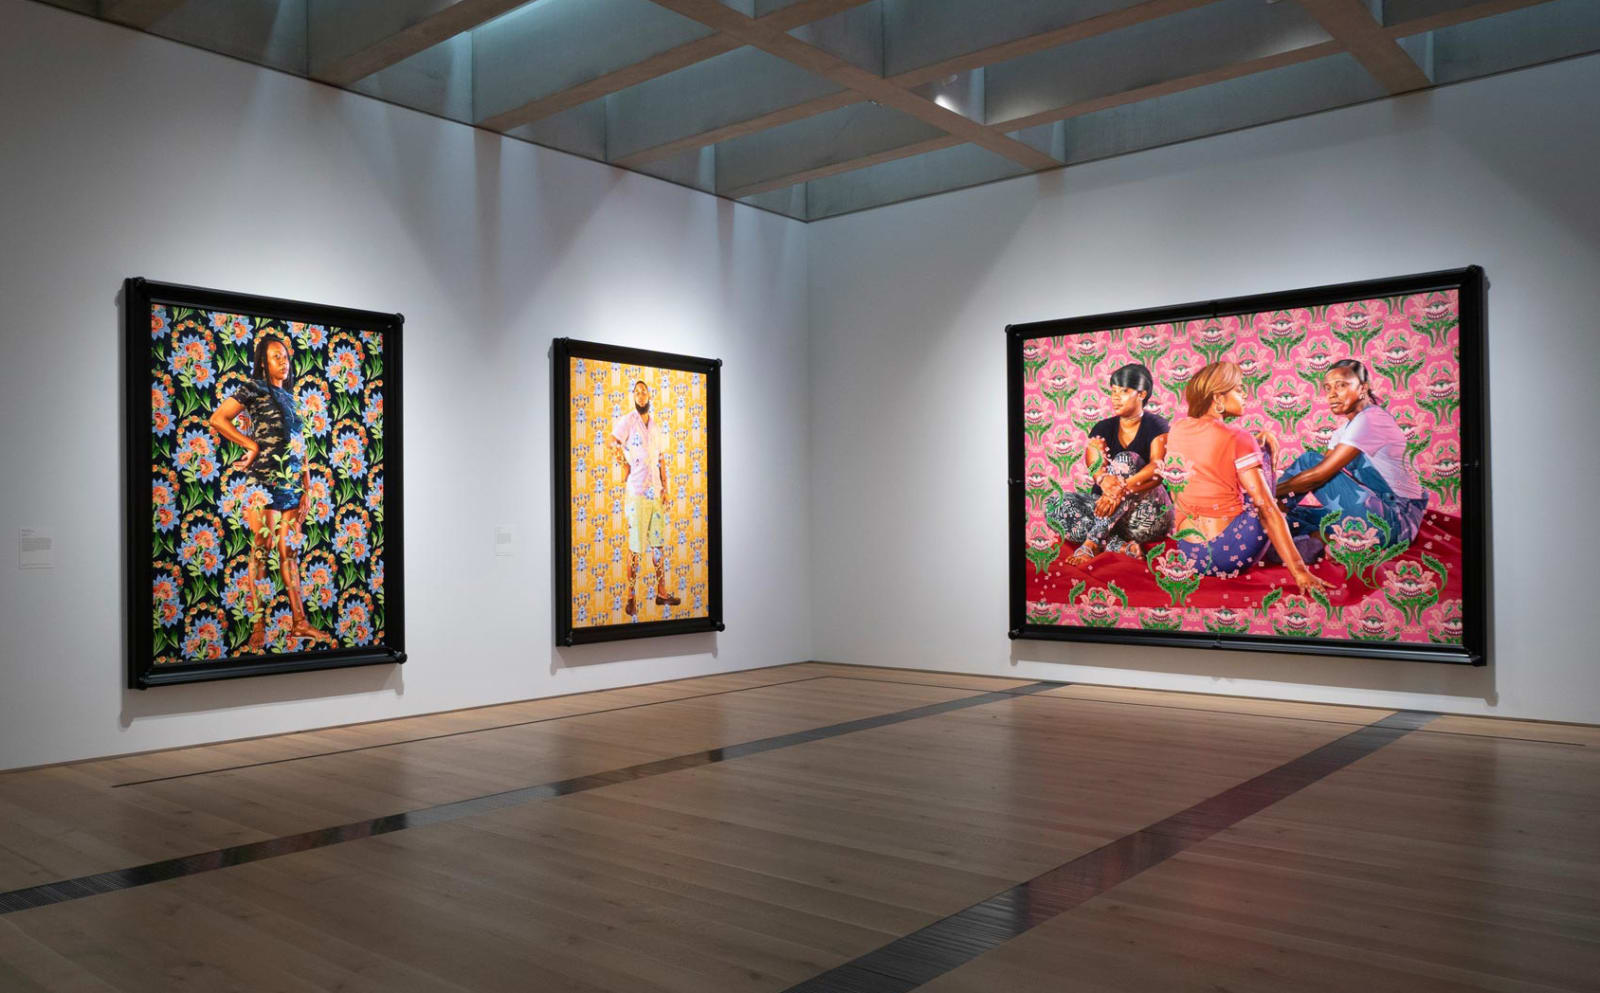 <p>Installation view: 'Kehinde Wiley: Saint Louis', Saint Louis Art Museum, Saint Louis, MO (2018-2019).</p>